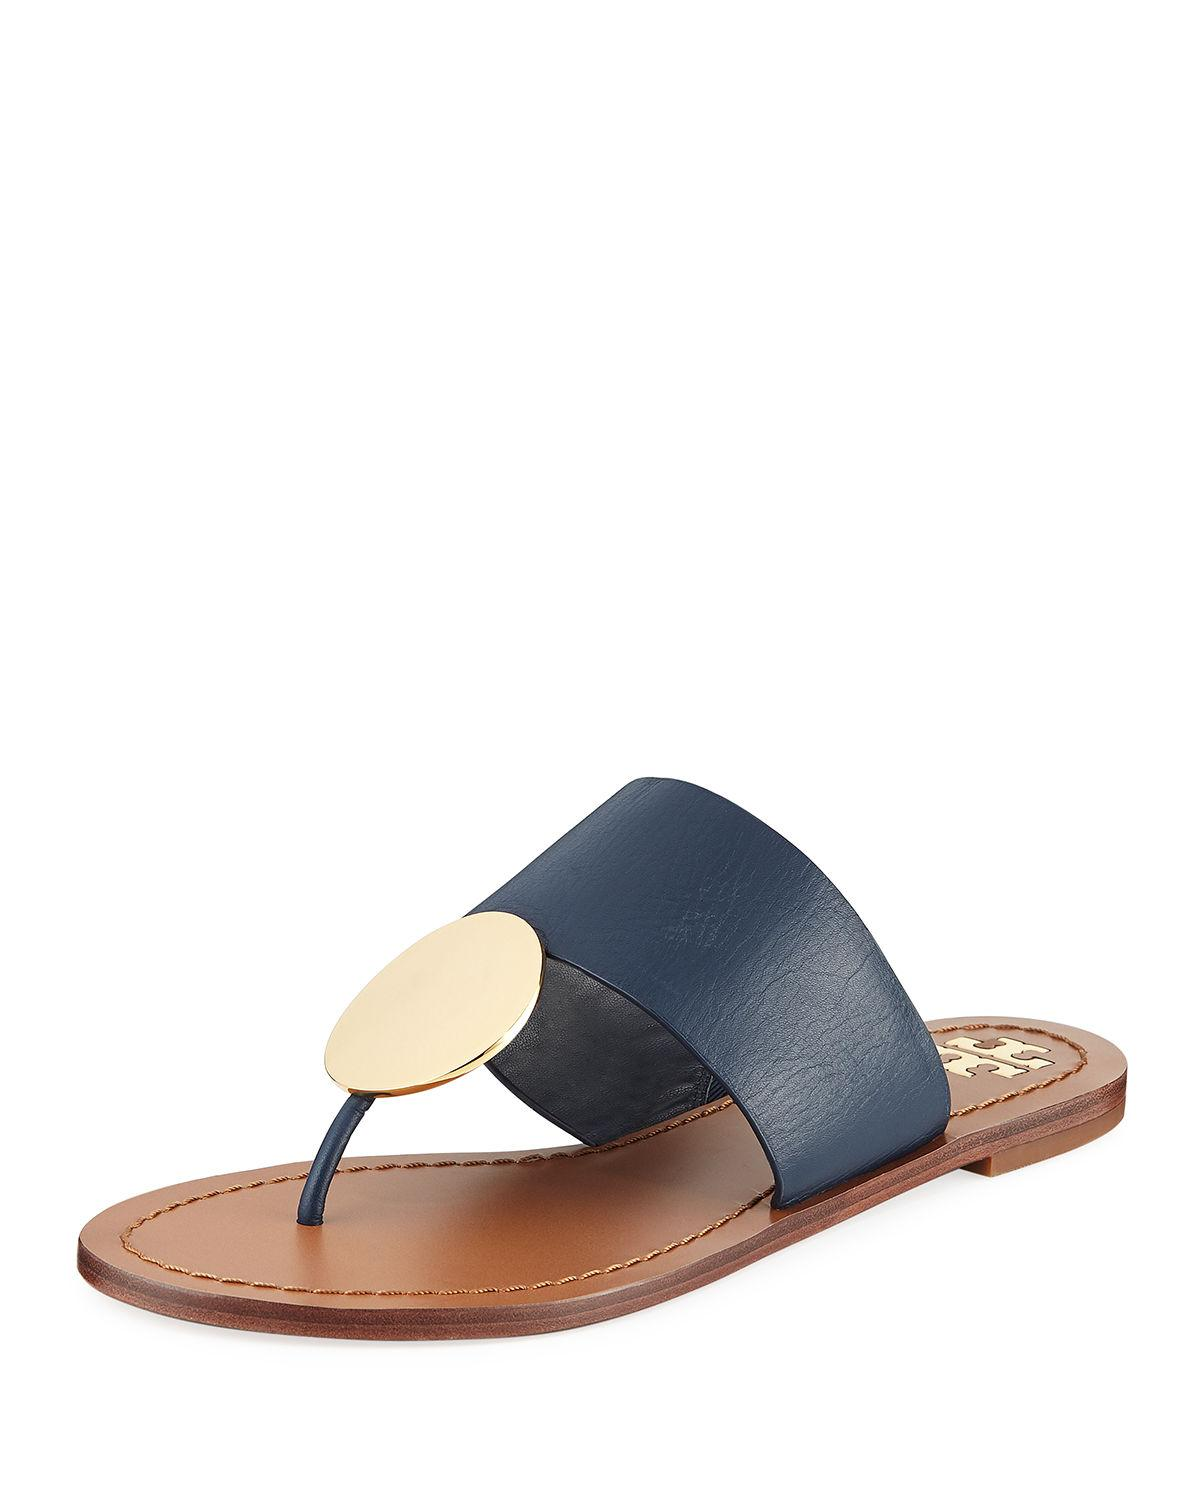 ea6c183dae9 Lyst - Tory Burch Patos Disk Sandal in Blue - Save 70%